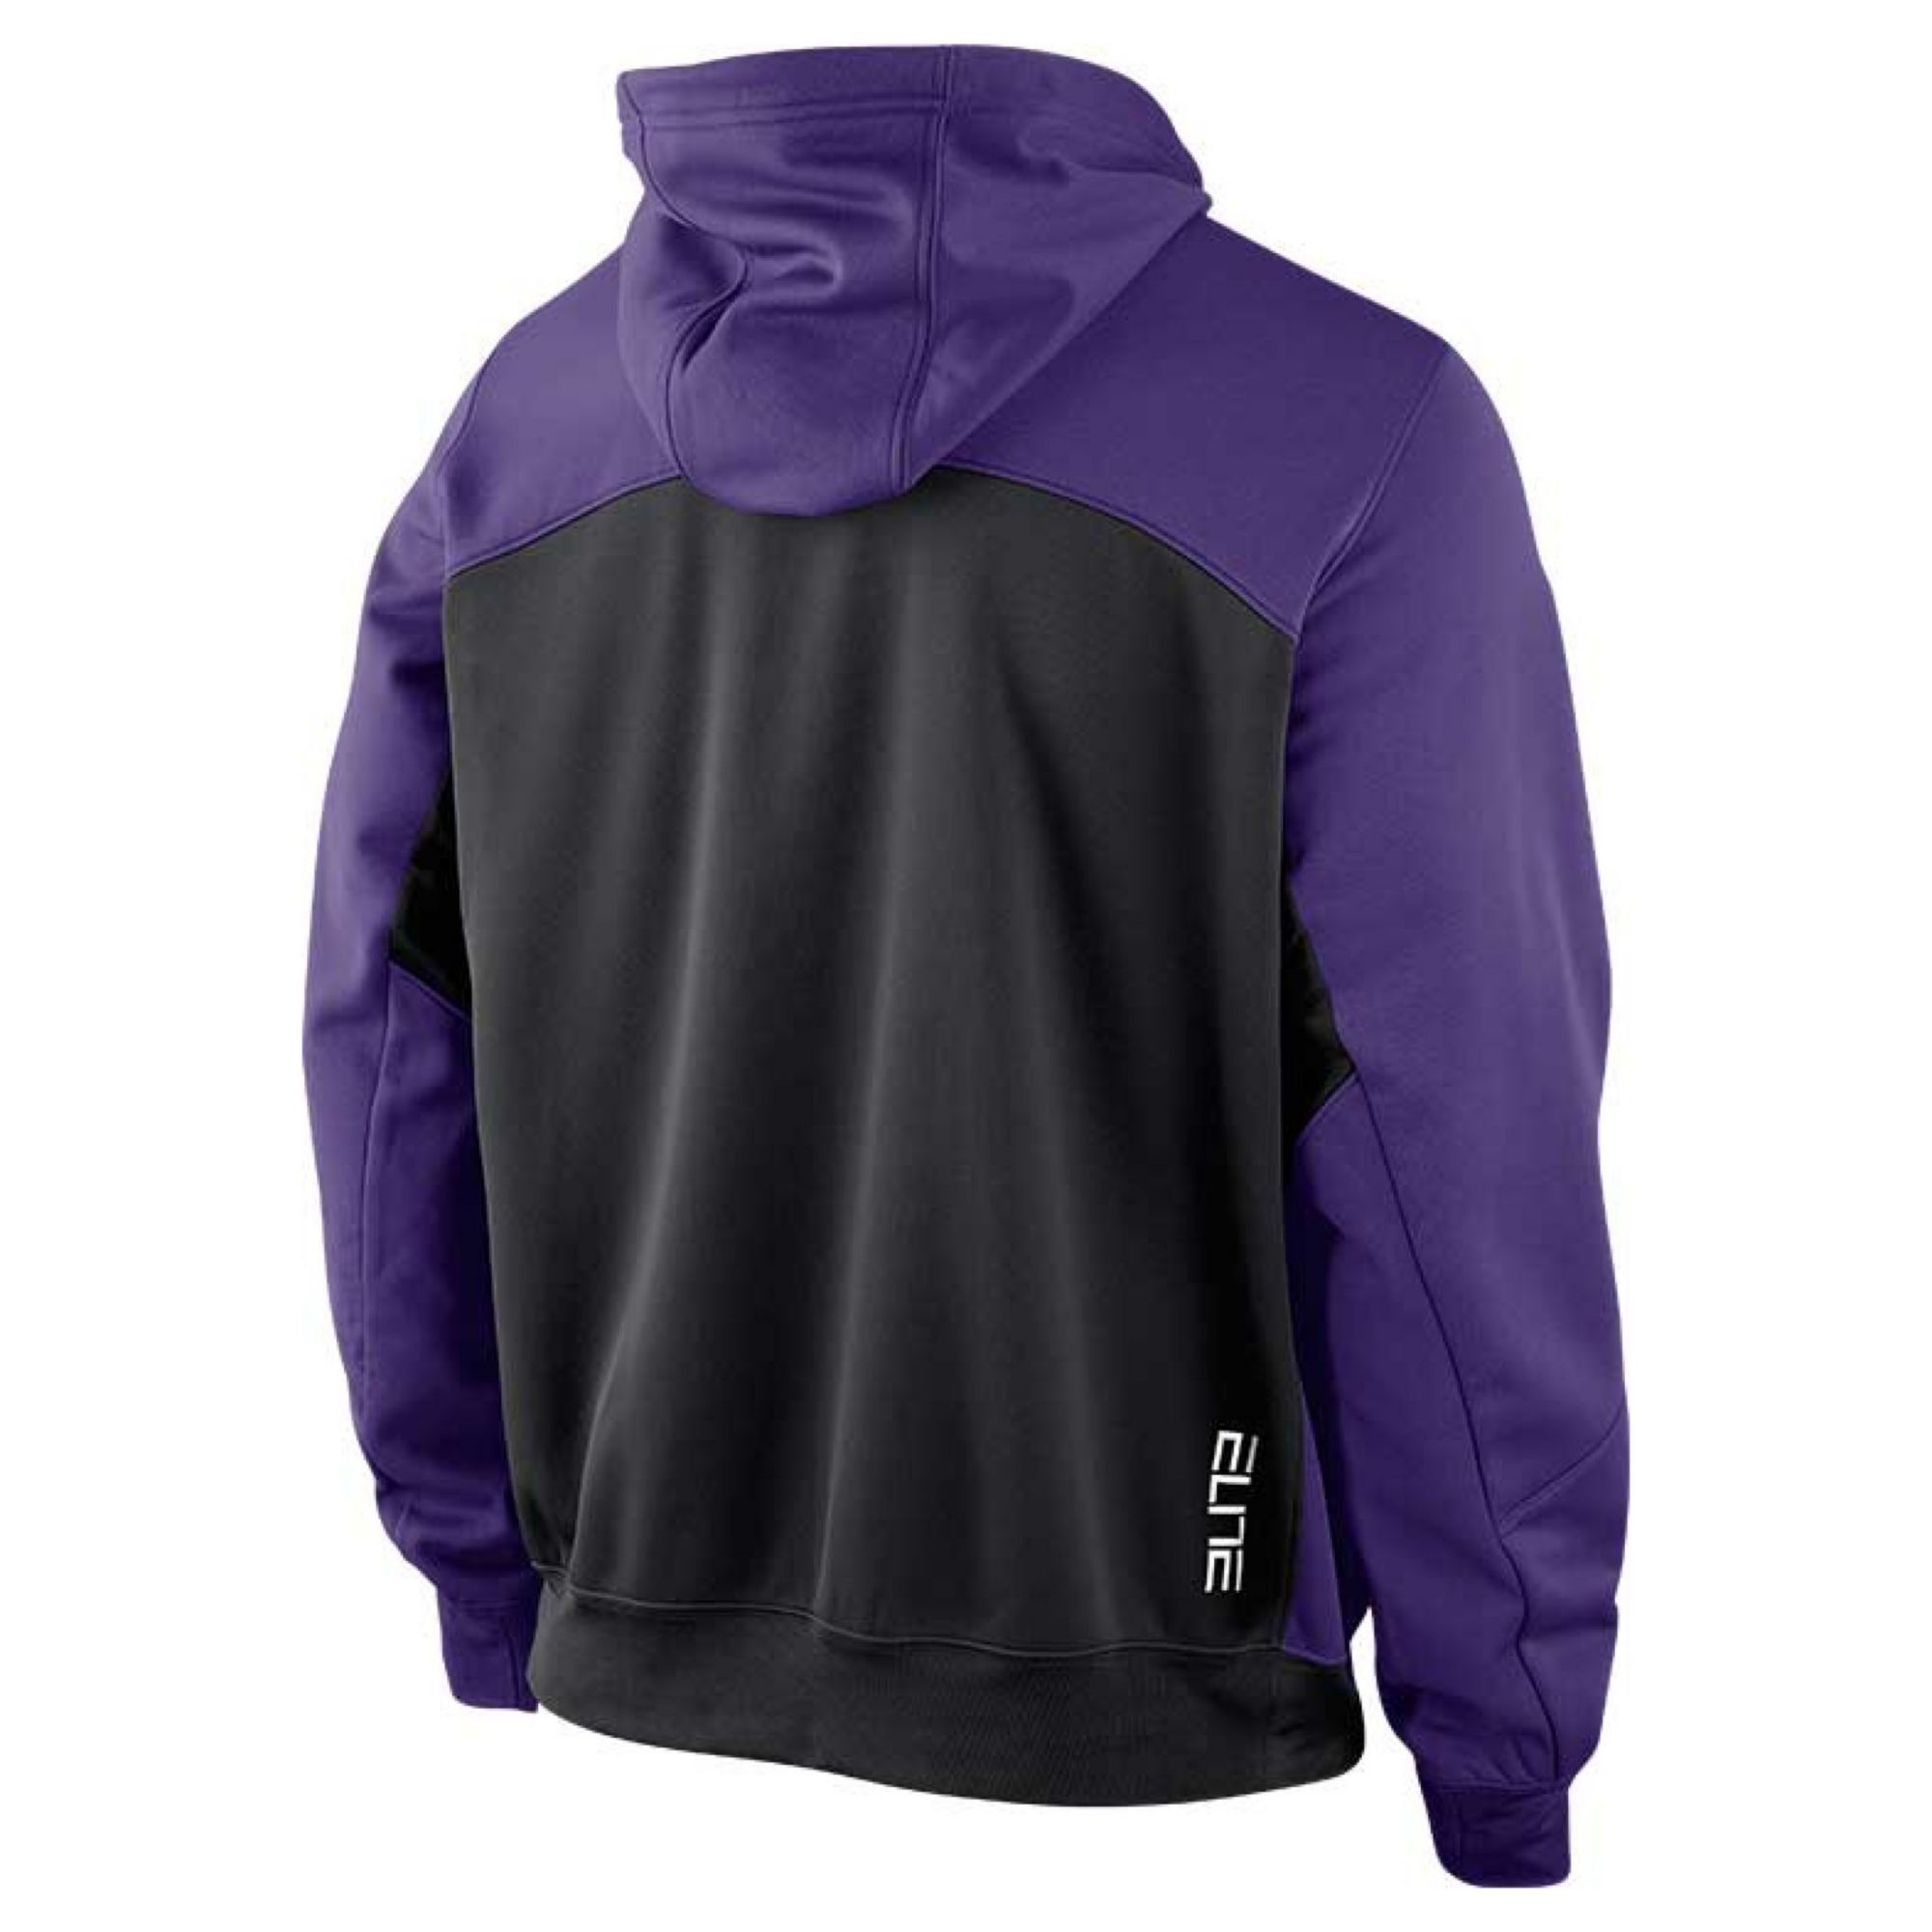 9be1a363e8b Lyst - Nike Mens Lsu Tigers Fullzip Thermafit Hoodie in Purple for Men